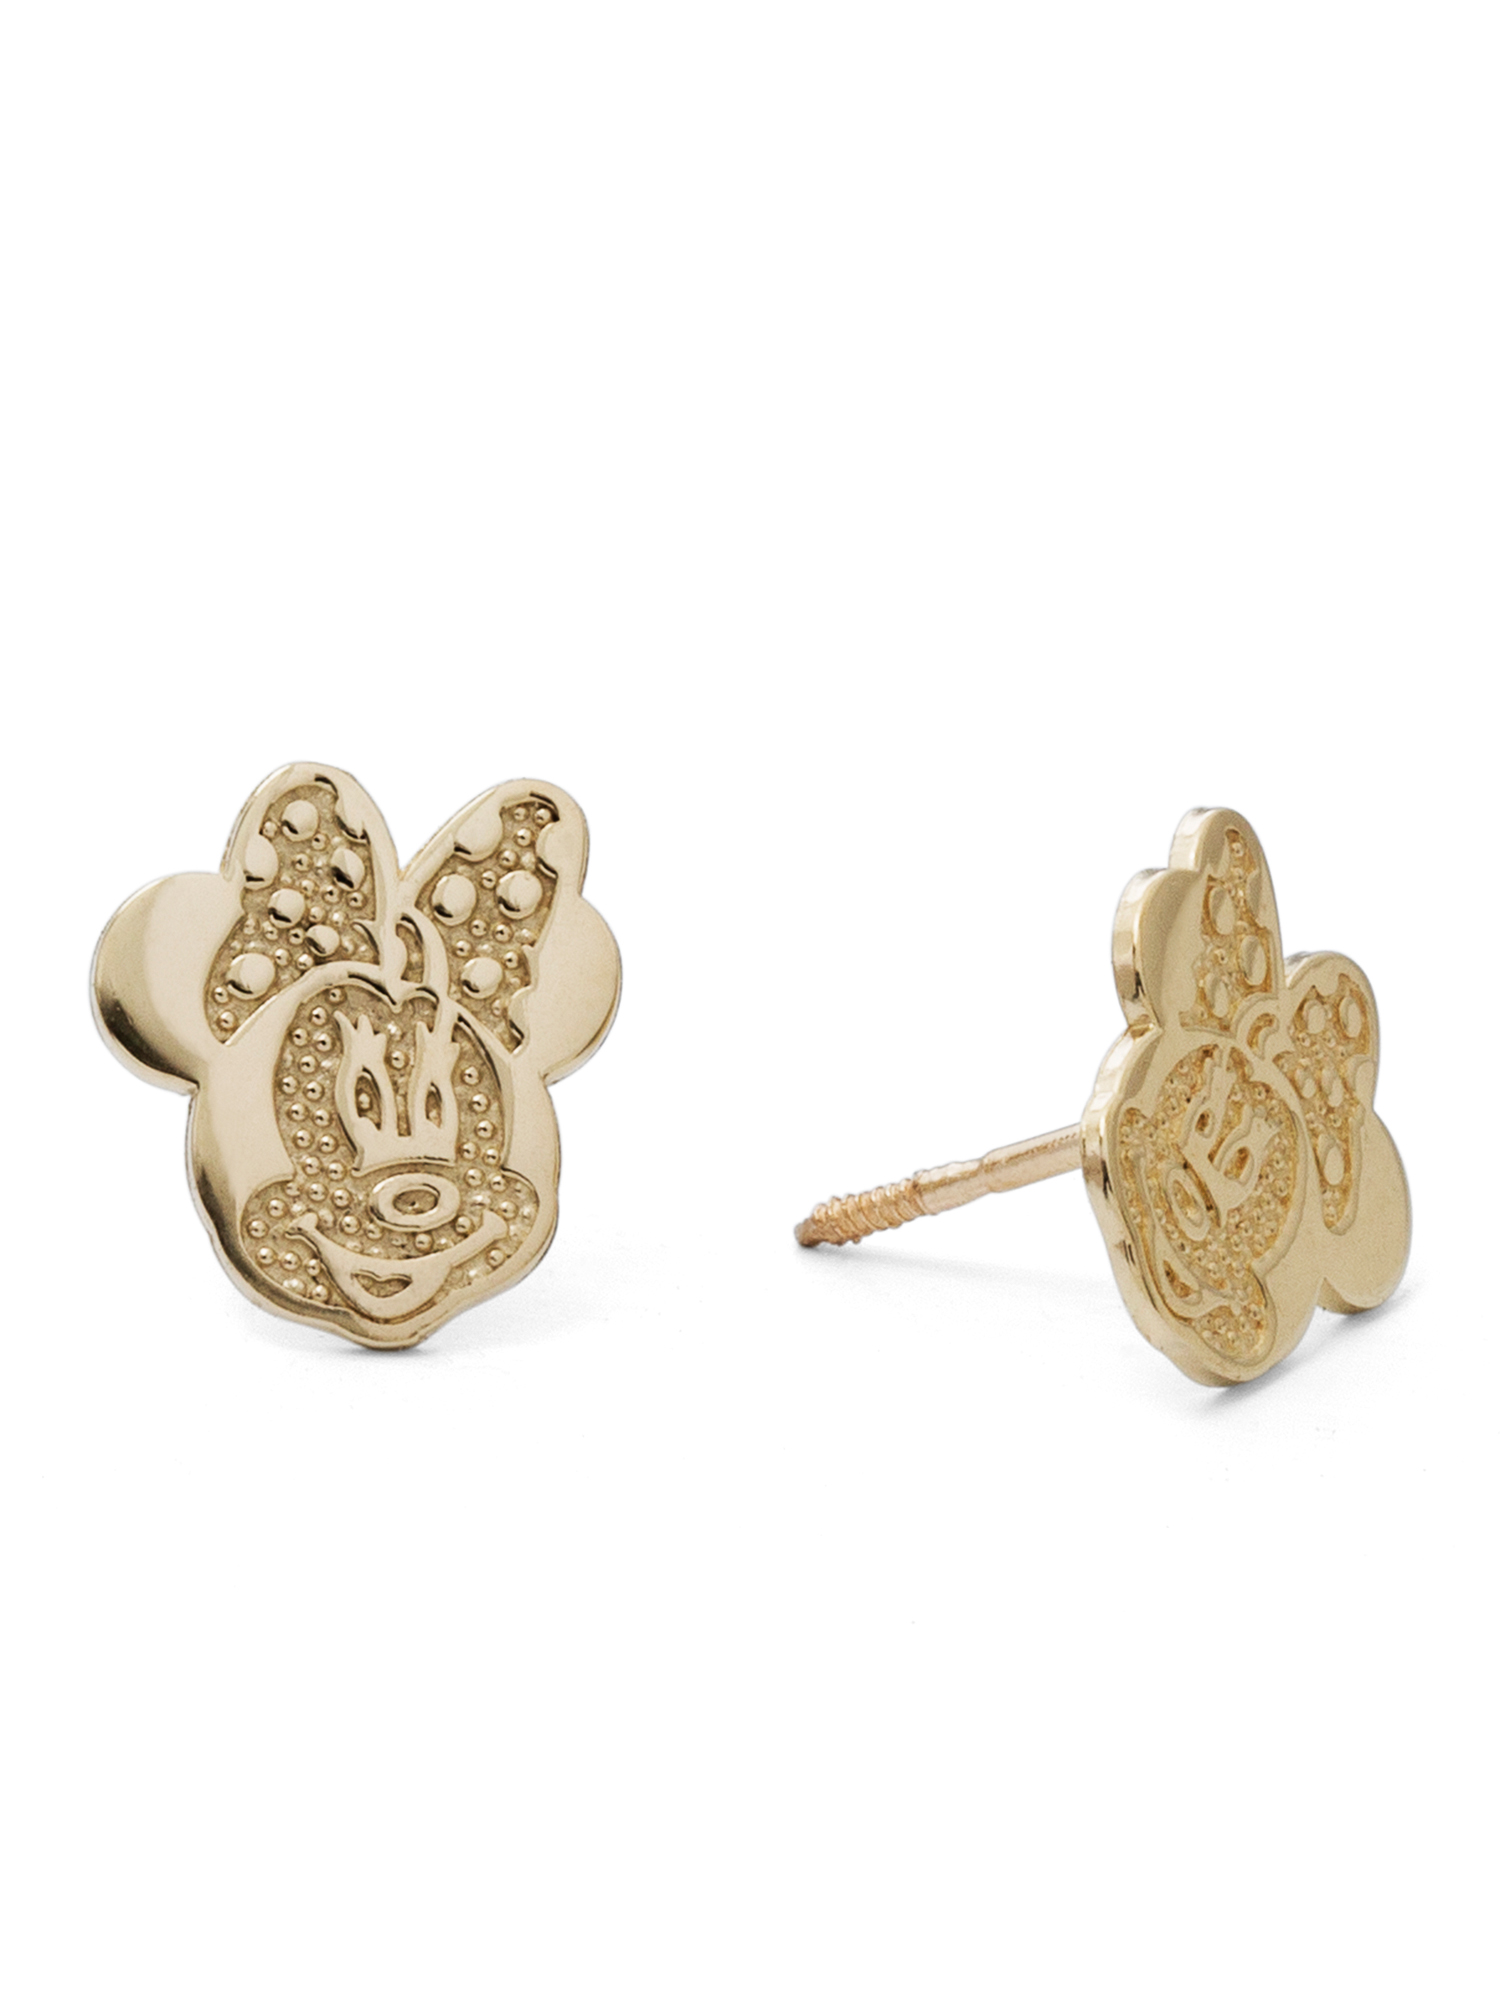 Disney 10kt Yellow Gold Minnie Mouse Stud Earrings